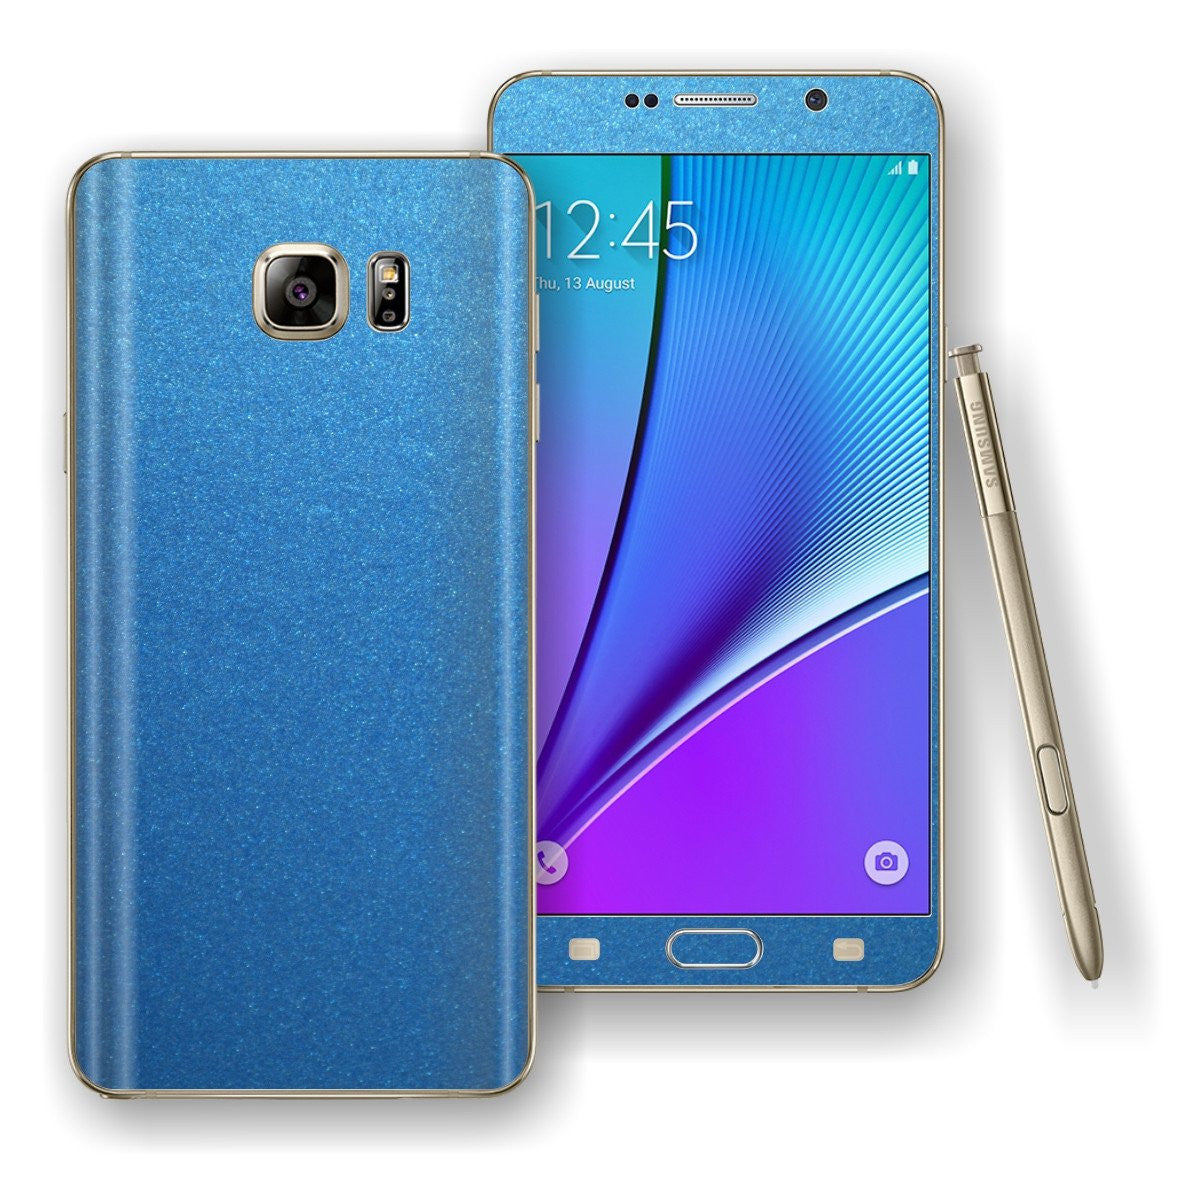 Samsung Galaxy NOTE 5 Azure Blue Matt Metallic Skin Wrap Decal Cover Protector by EasySkinz